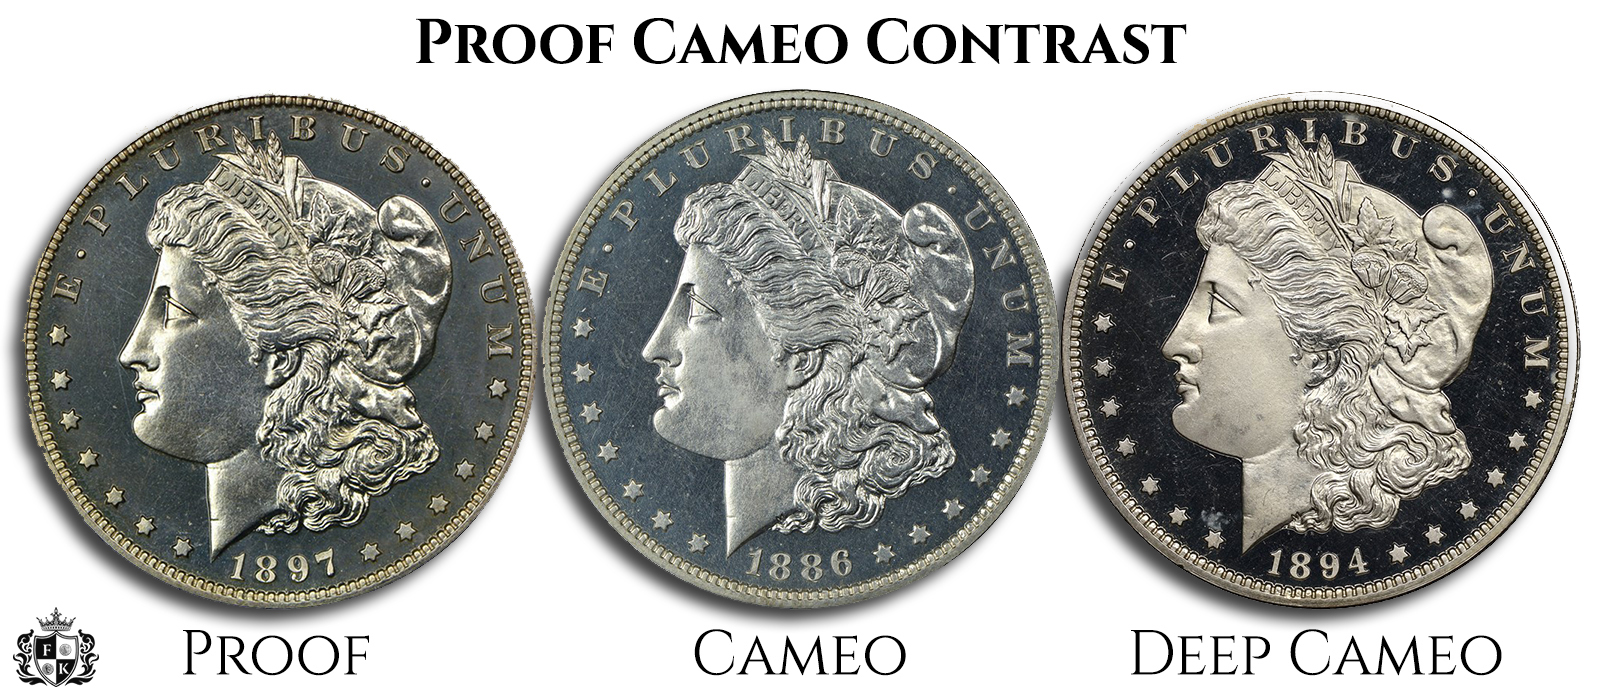 Finest-Known_11-Proof-Coins_Cameo-Contrast